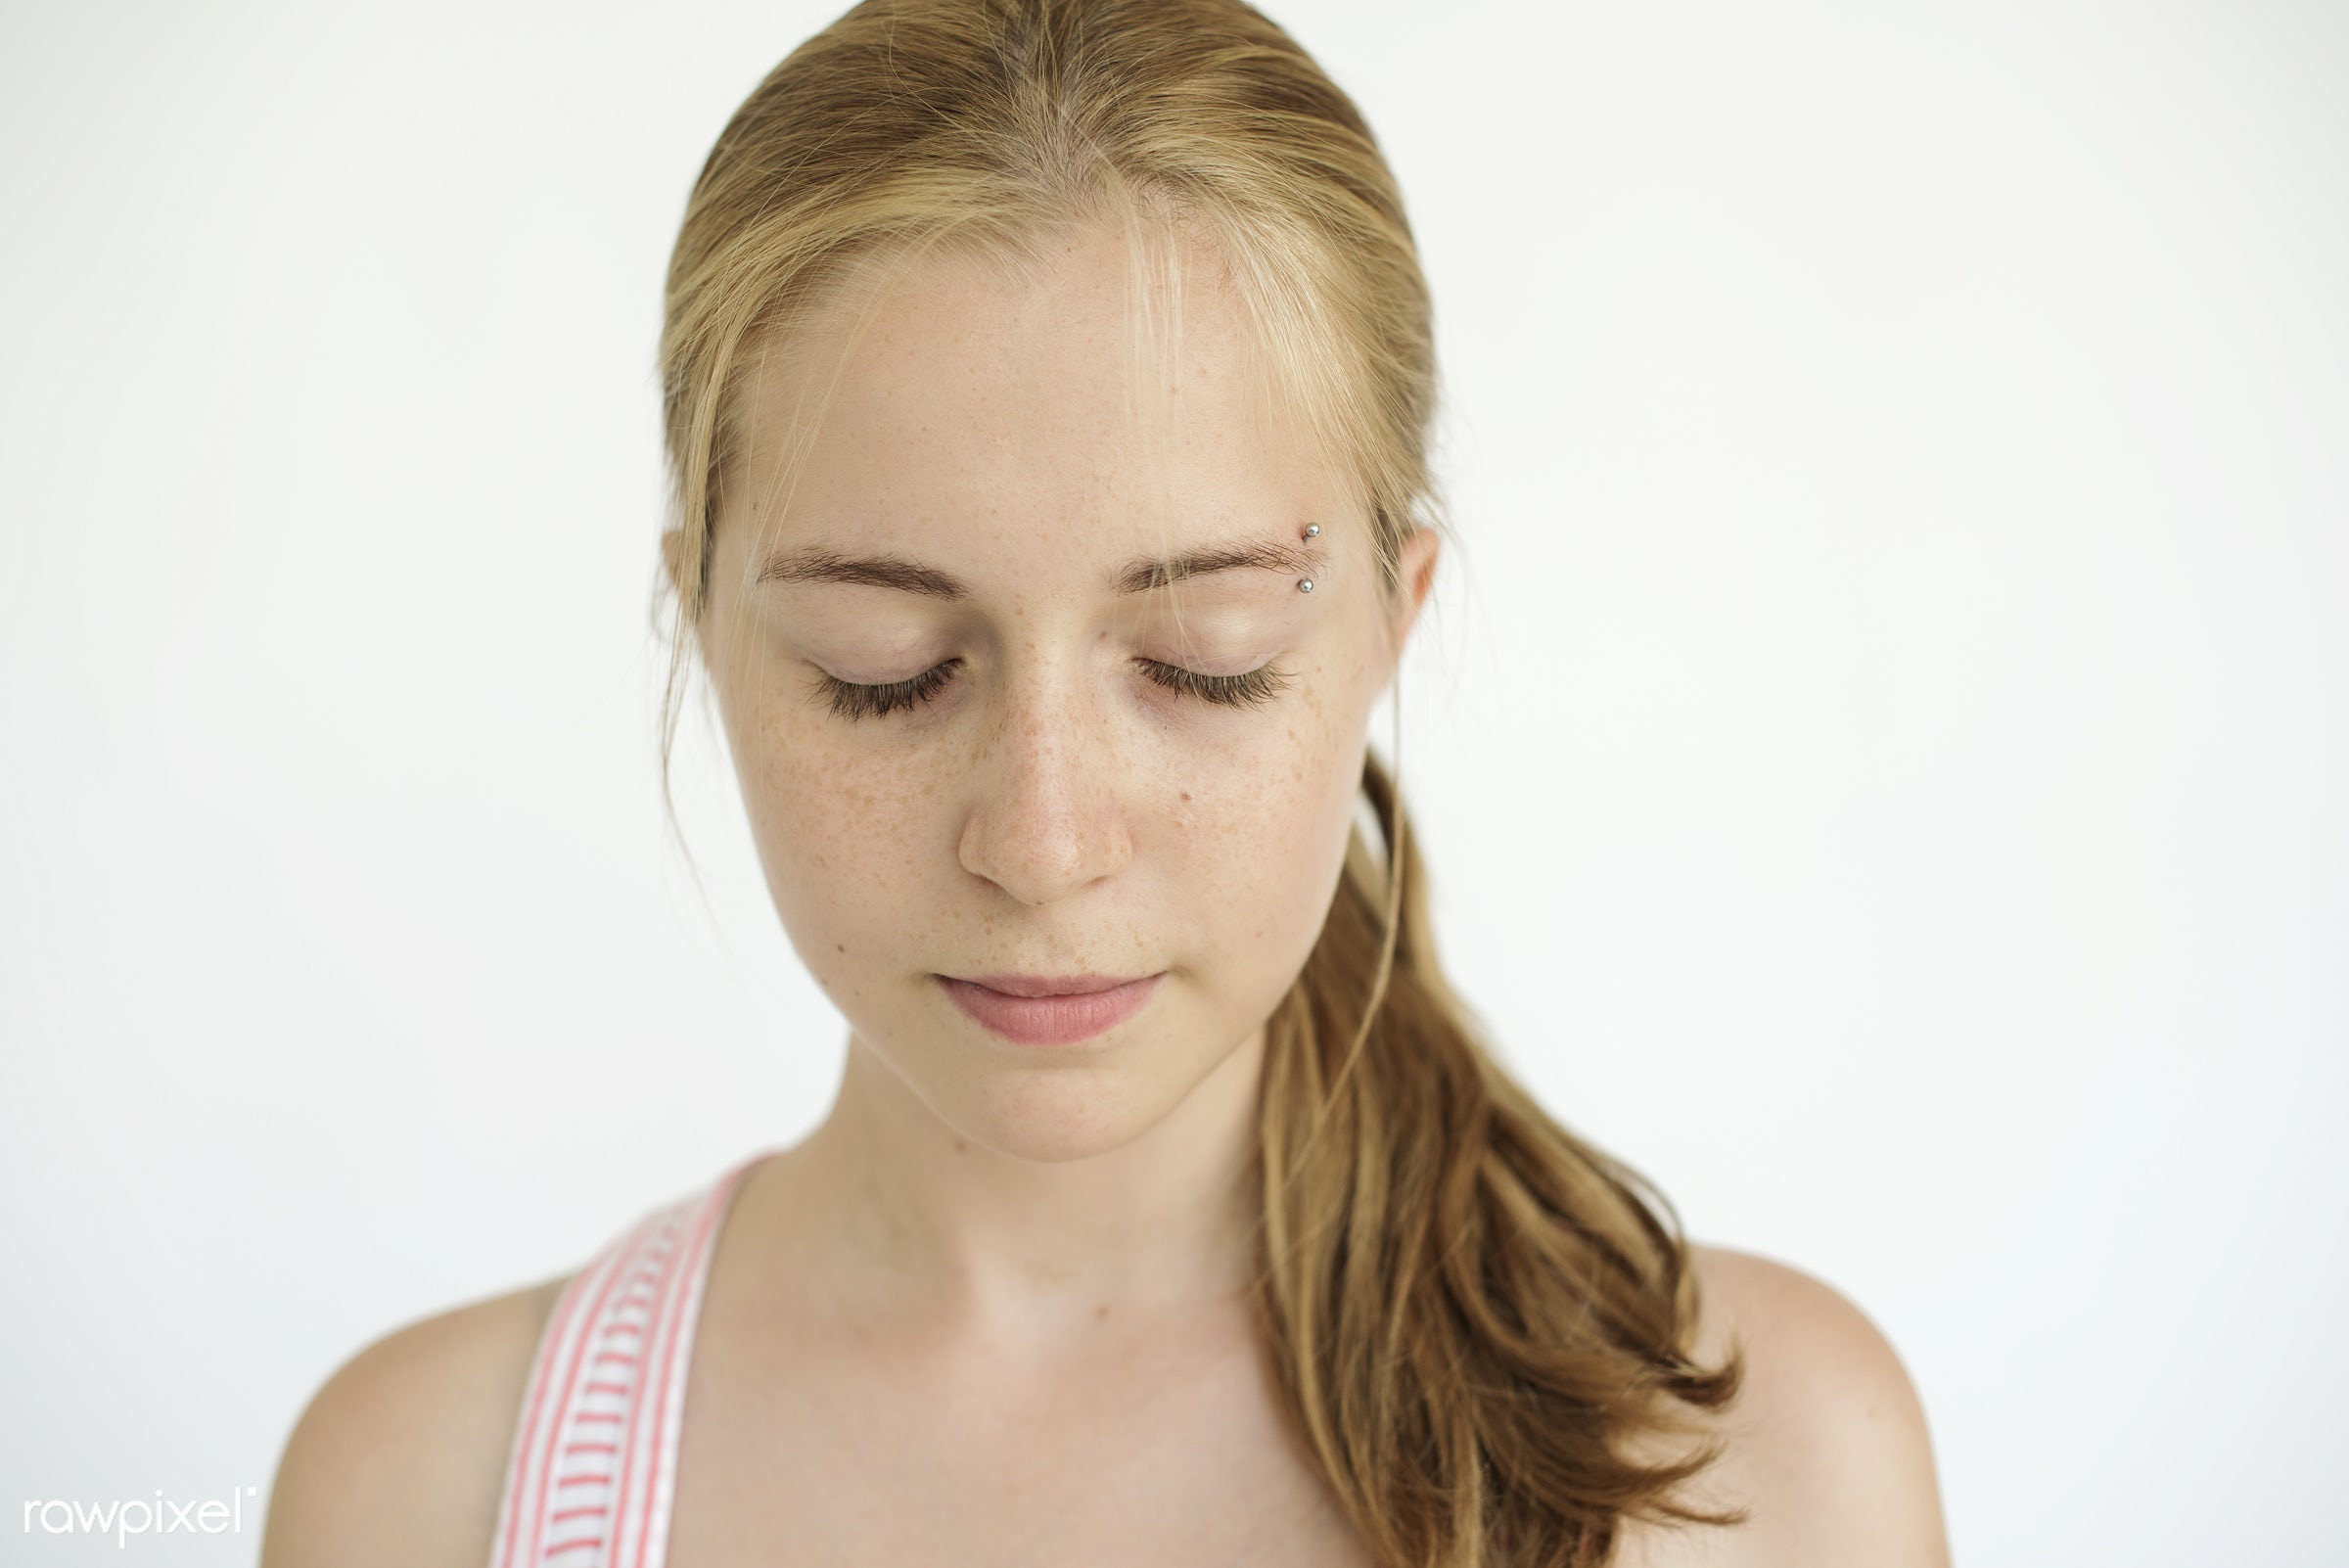 Young blonde closed eyes peaceful portrait - inhale, alone, background, blonde, breathe, calm, casual, caucasian, closed,...